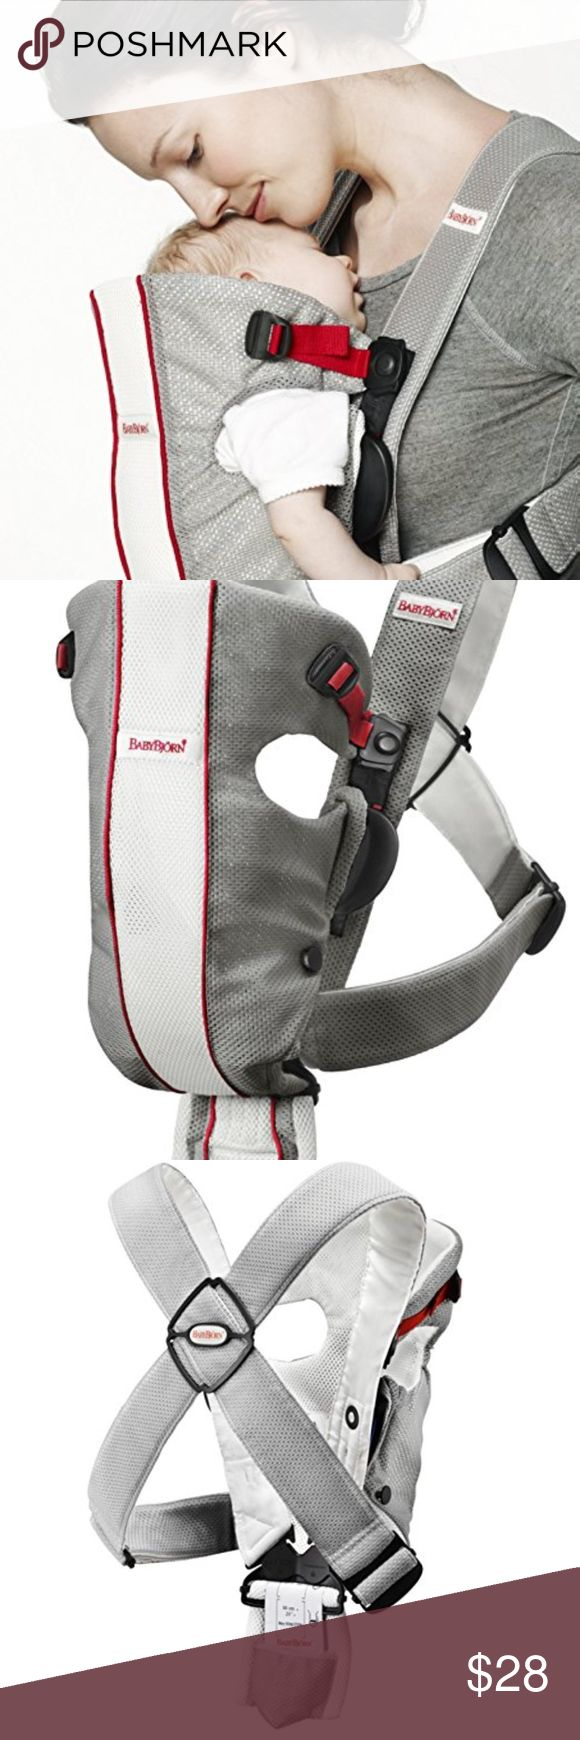 """BabyBjorn Baby Carrier Original BabyBjorn Baby Carrier Original: Recommended for a newborn at least 8 lbs and 21"""" up to 25 lbs Easily and securely carry child, hands-free Fits parents perfectly and securely with only a few adjustments 2-part design allows you to lift sleeping baby from carrier without waking Designed to give the proper support for baby's head, neck, spine and hips Baby Bjorn Other"""